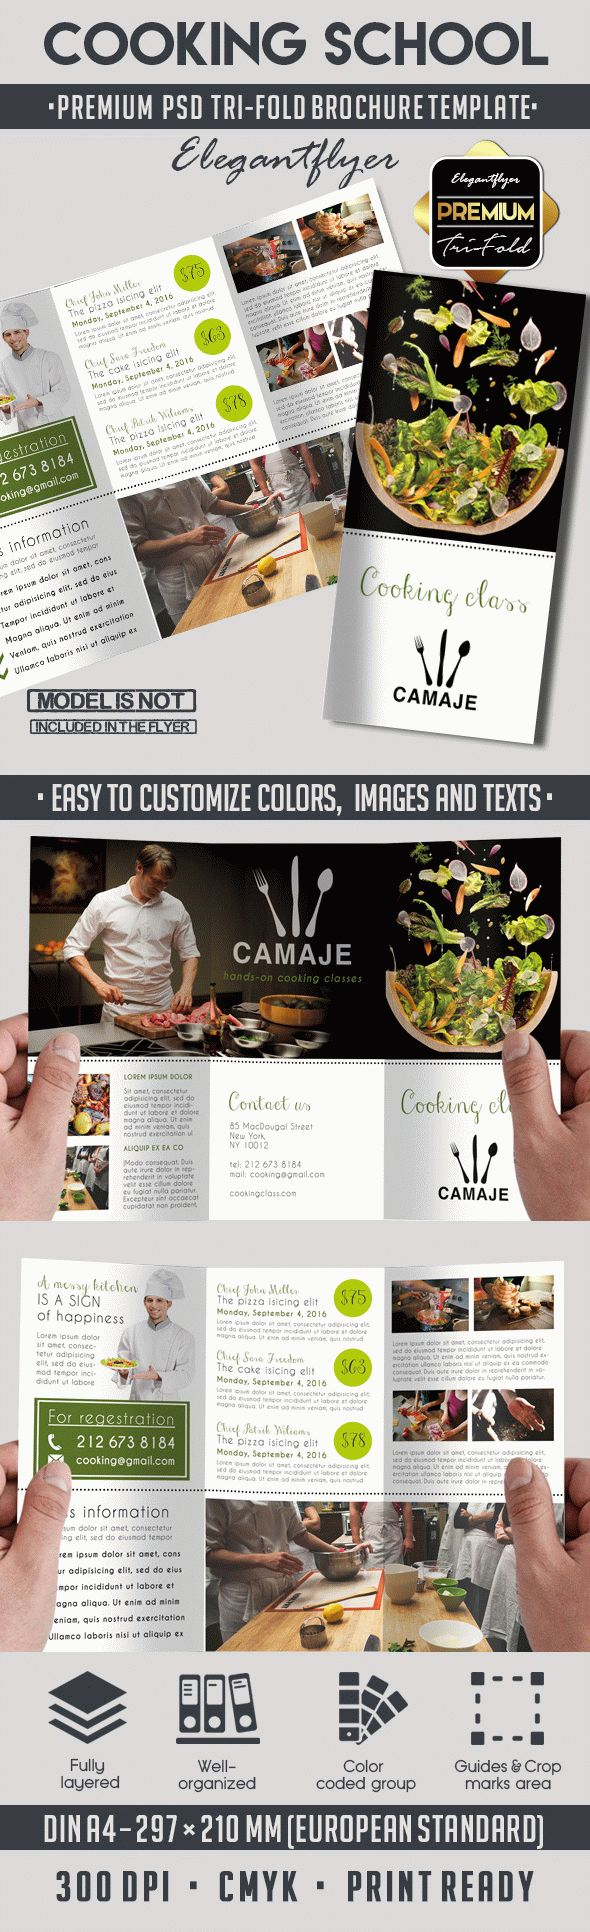 Tri-Fold Brochure for Cooking School